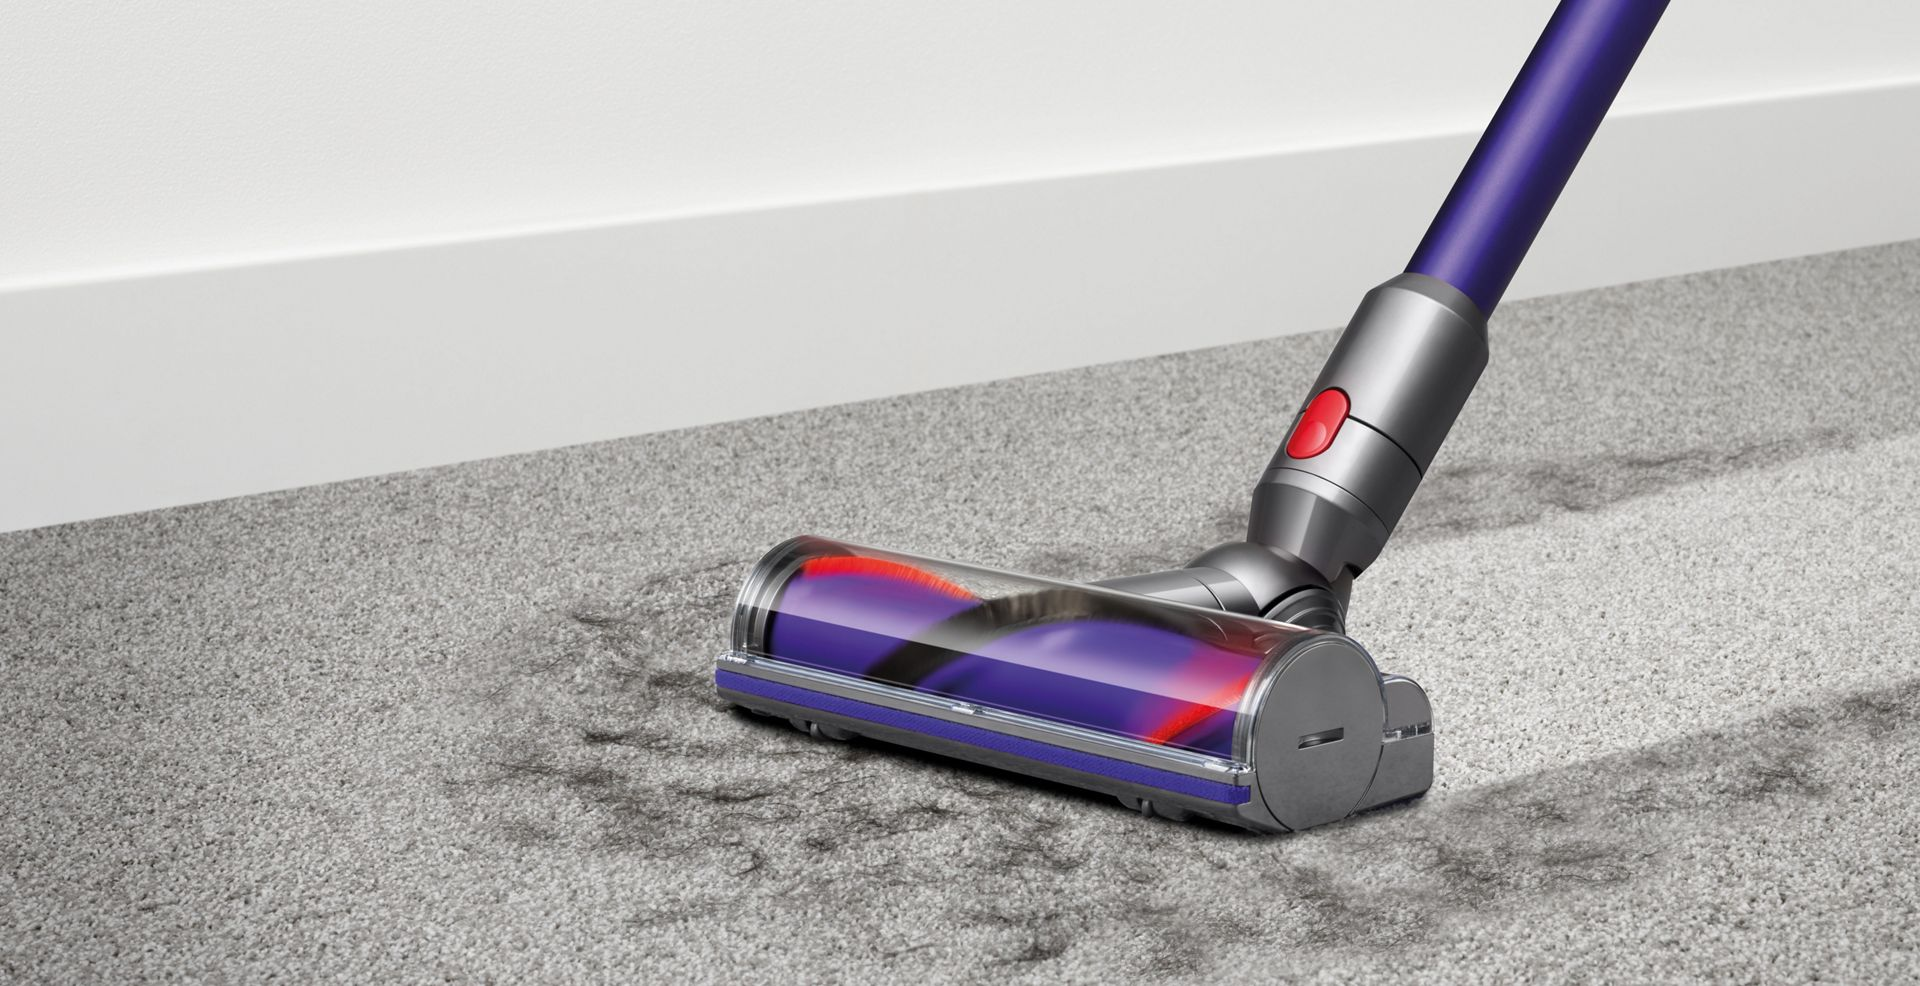 Dyson Cyclone V10 Animal Direct drive cleaner head